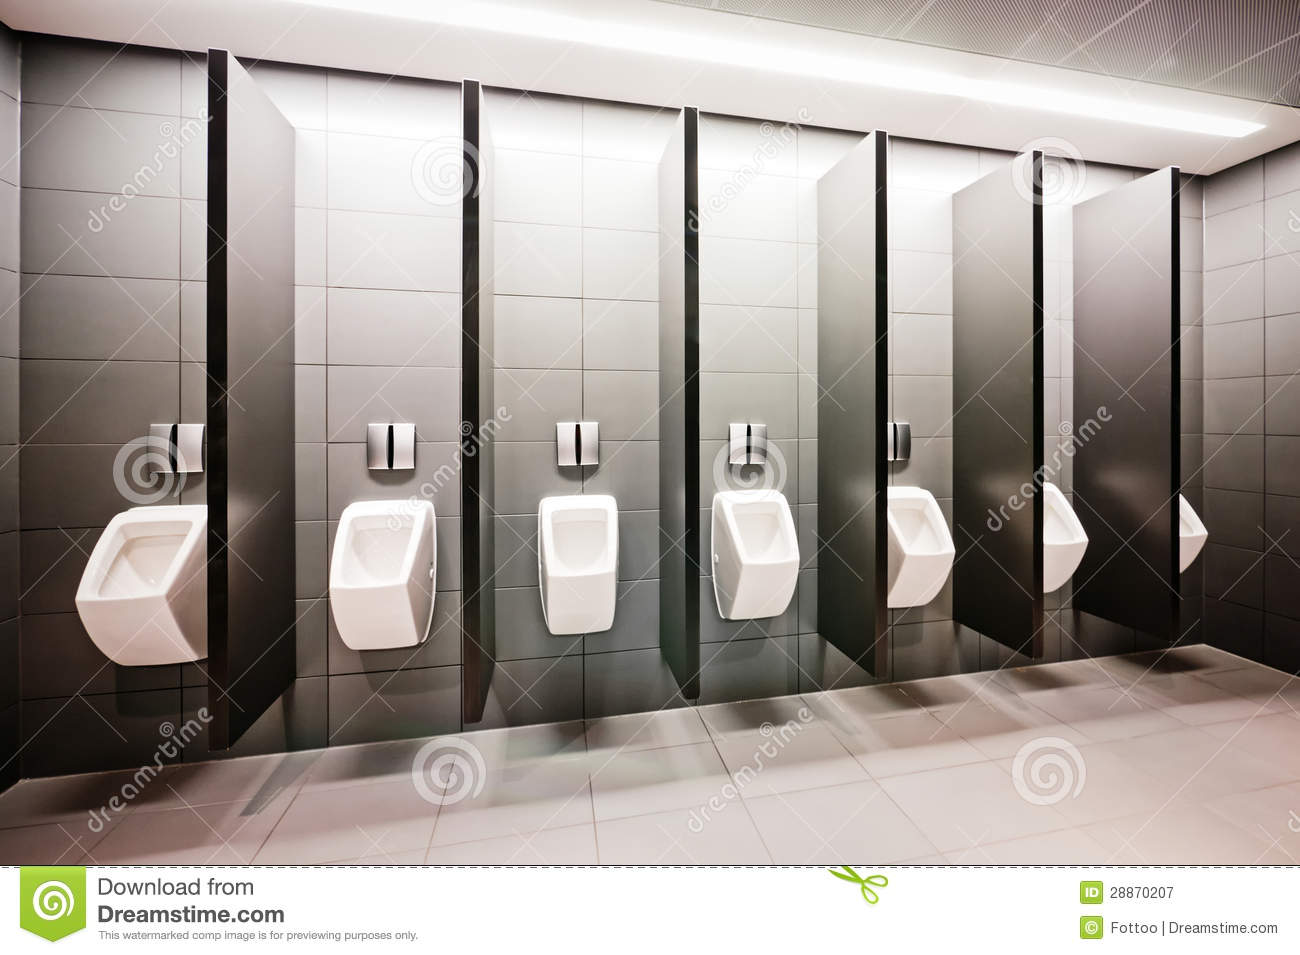 Public Restroom Royalty Free Stock Photography  Image